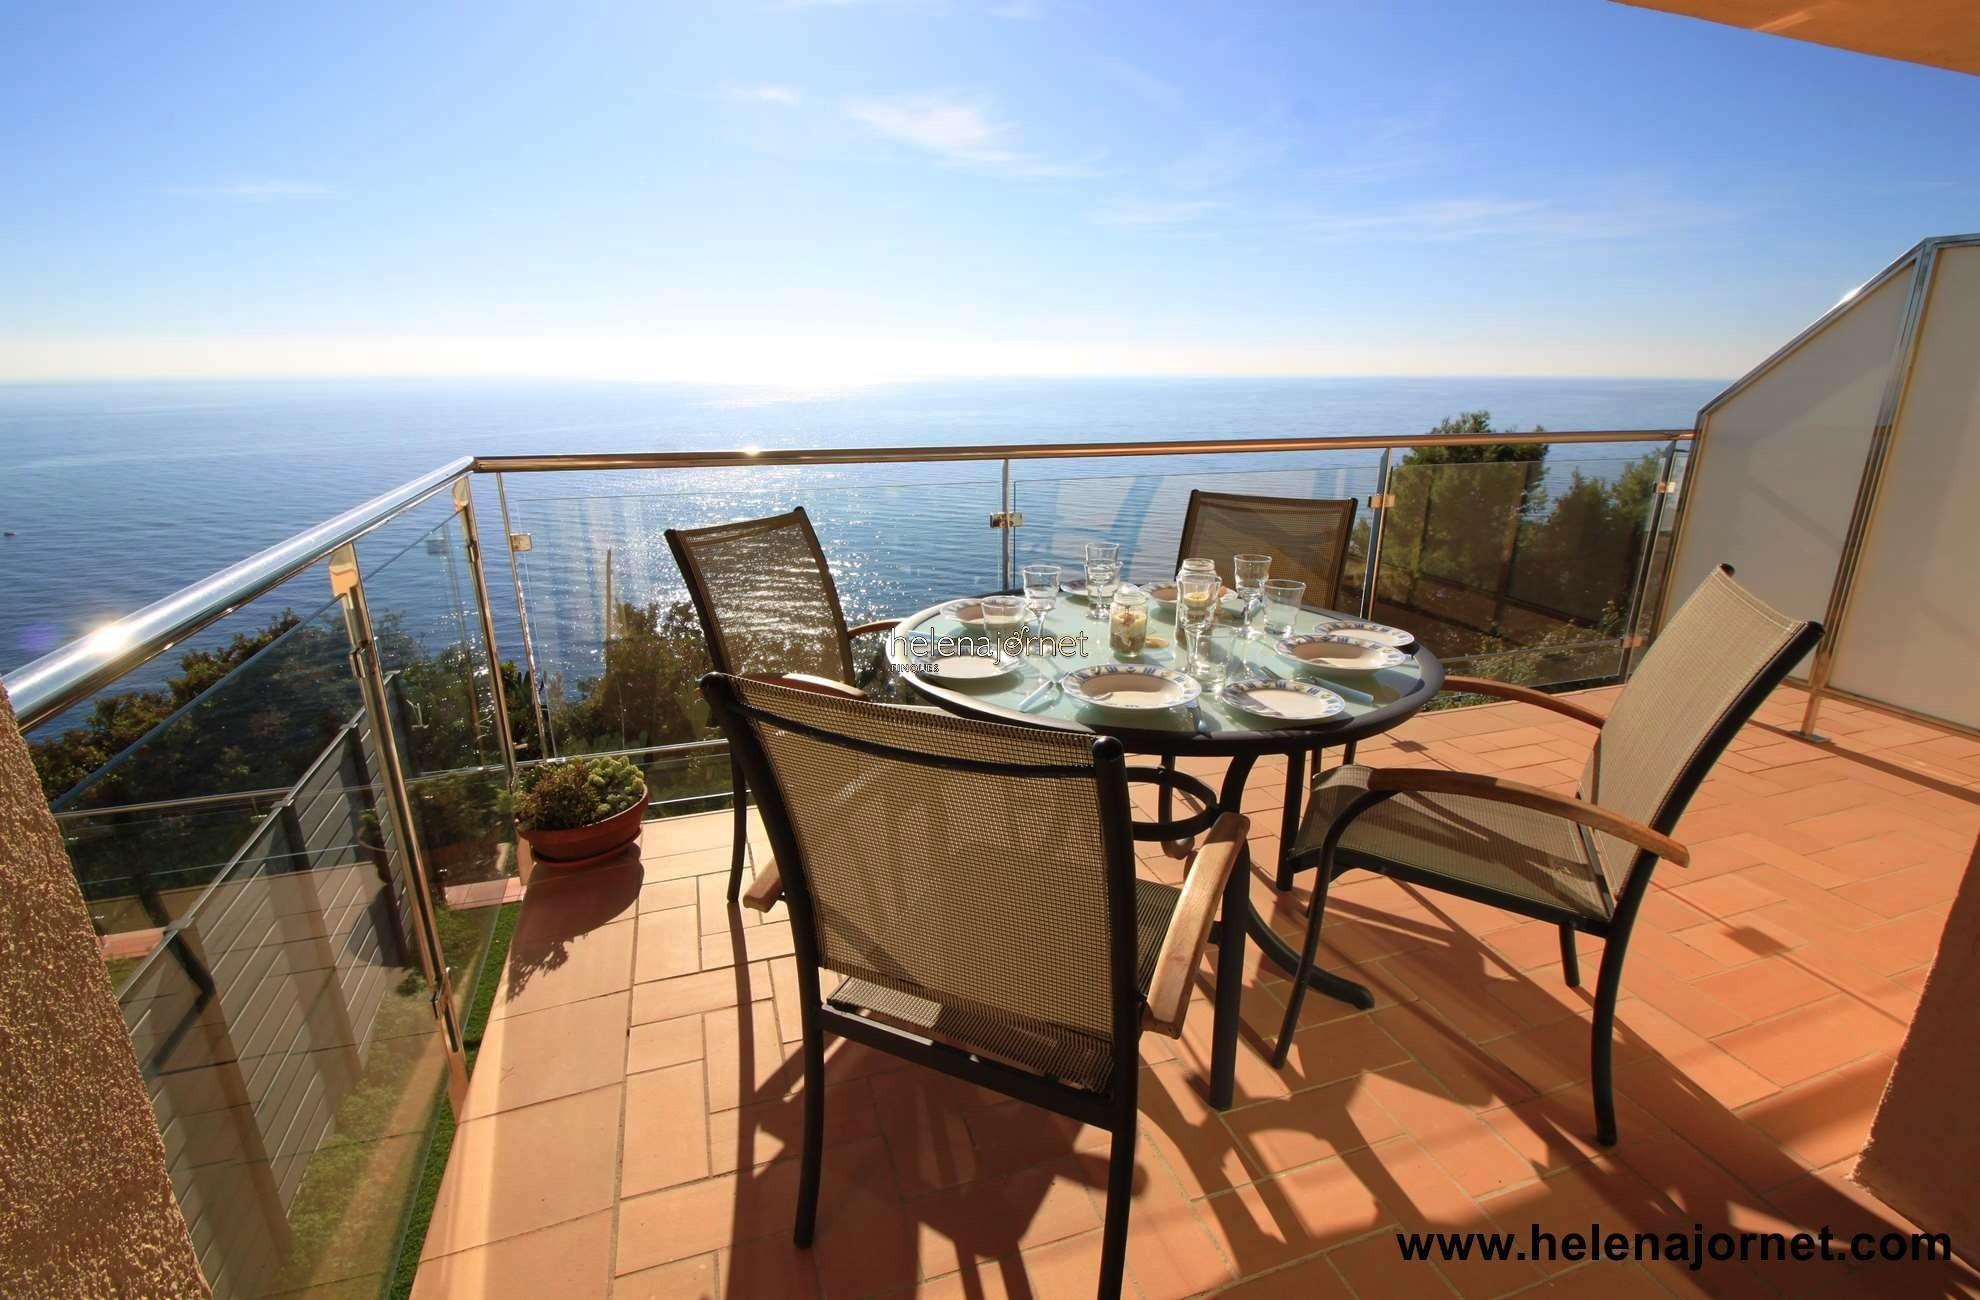 Apartment with terrace in the seafront with stunning sea views. - 70047 Rocafosca